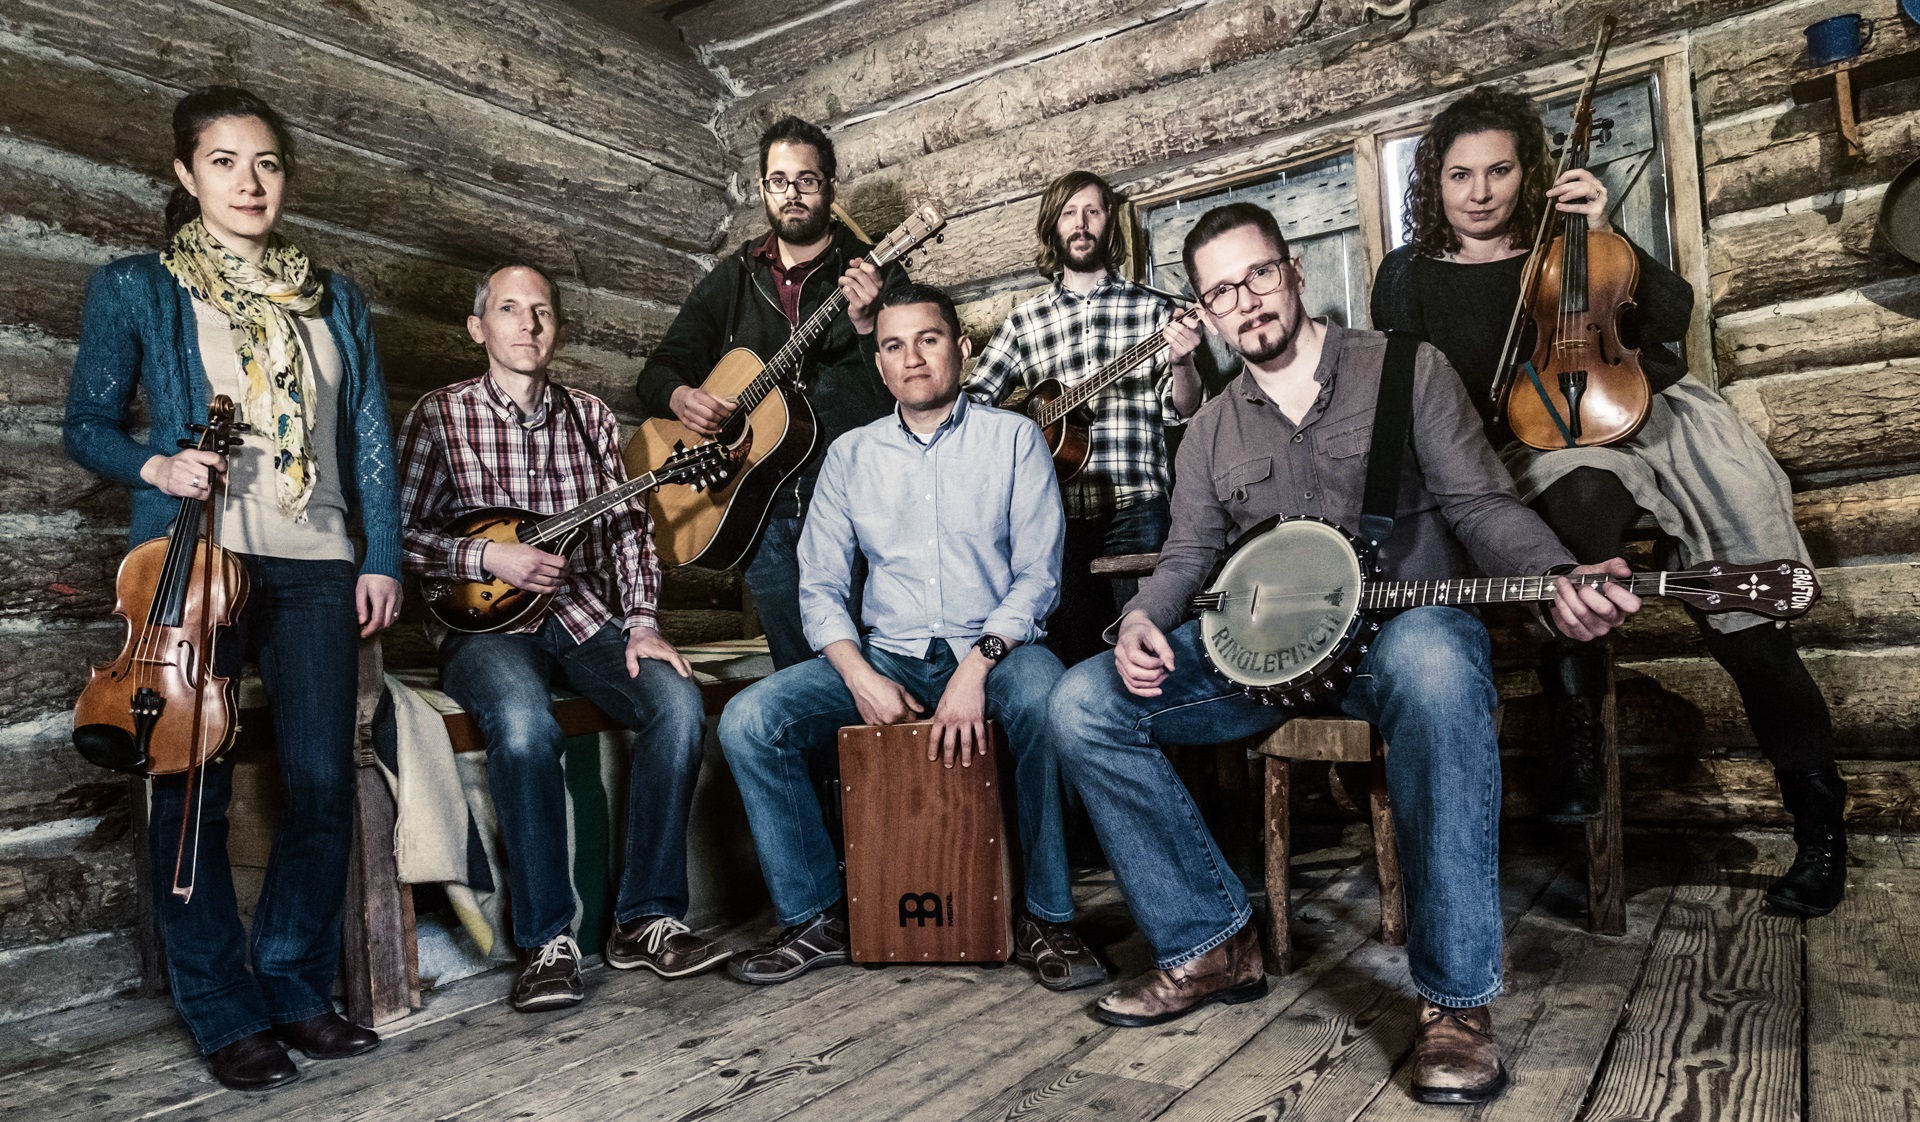 The seven members of Ringlefinch sit in a semi-circle facing the camera, in a log cabin. They hold their instruments, and look like they're just about to start playing.